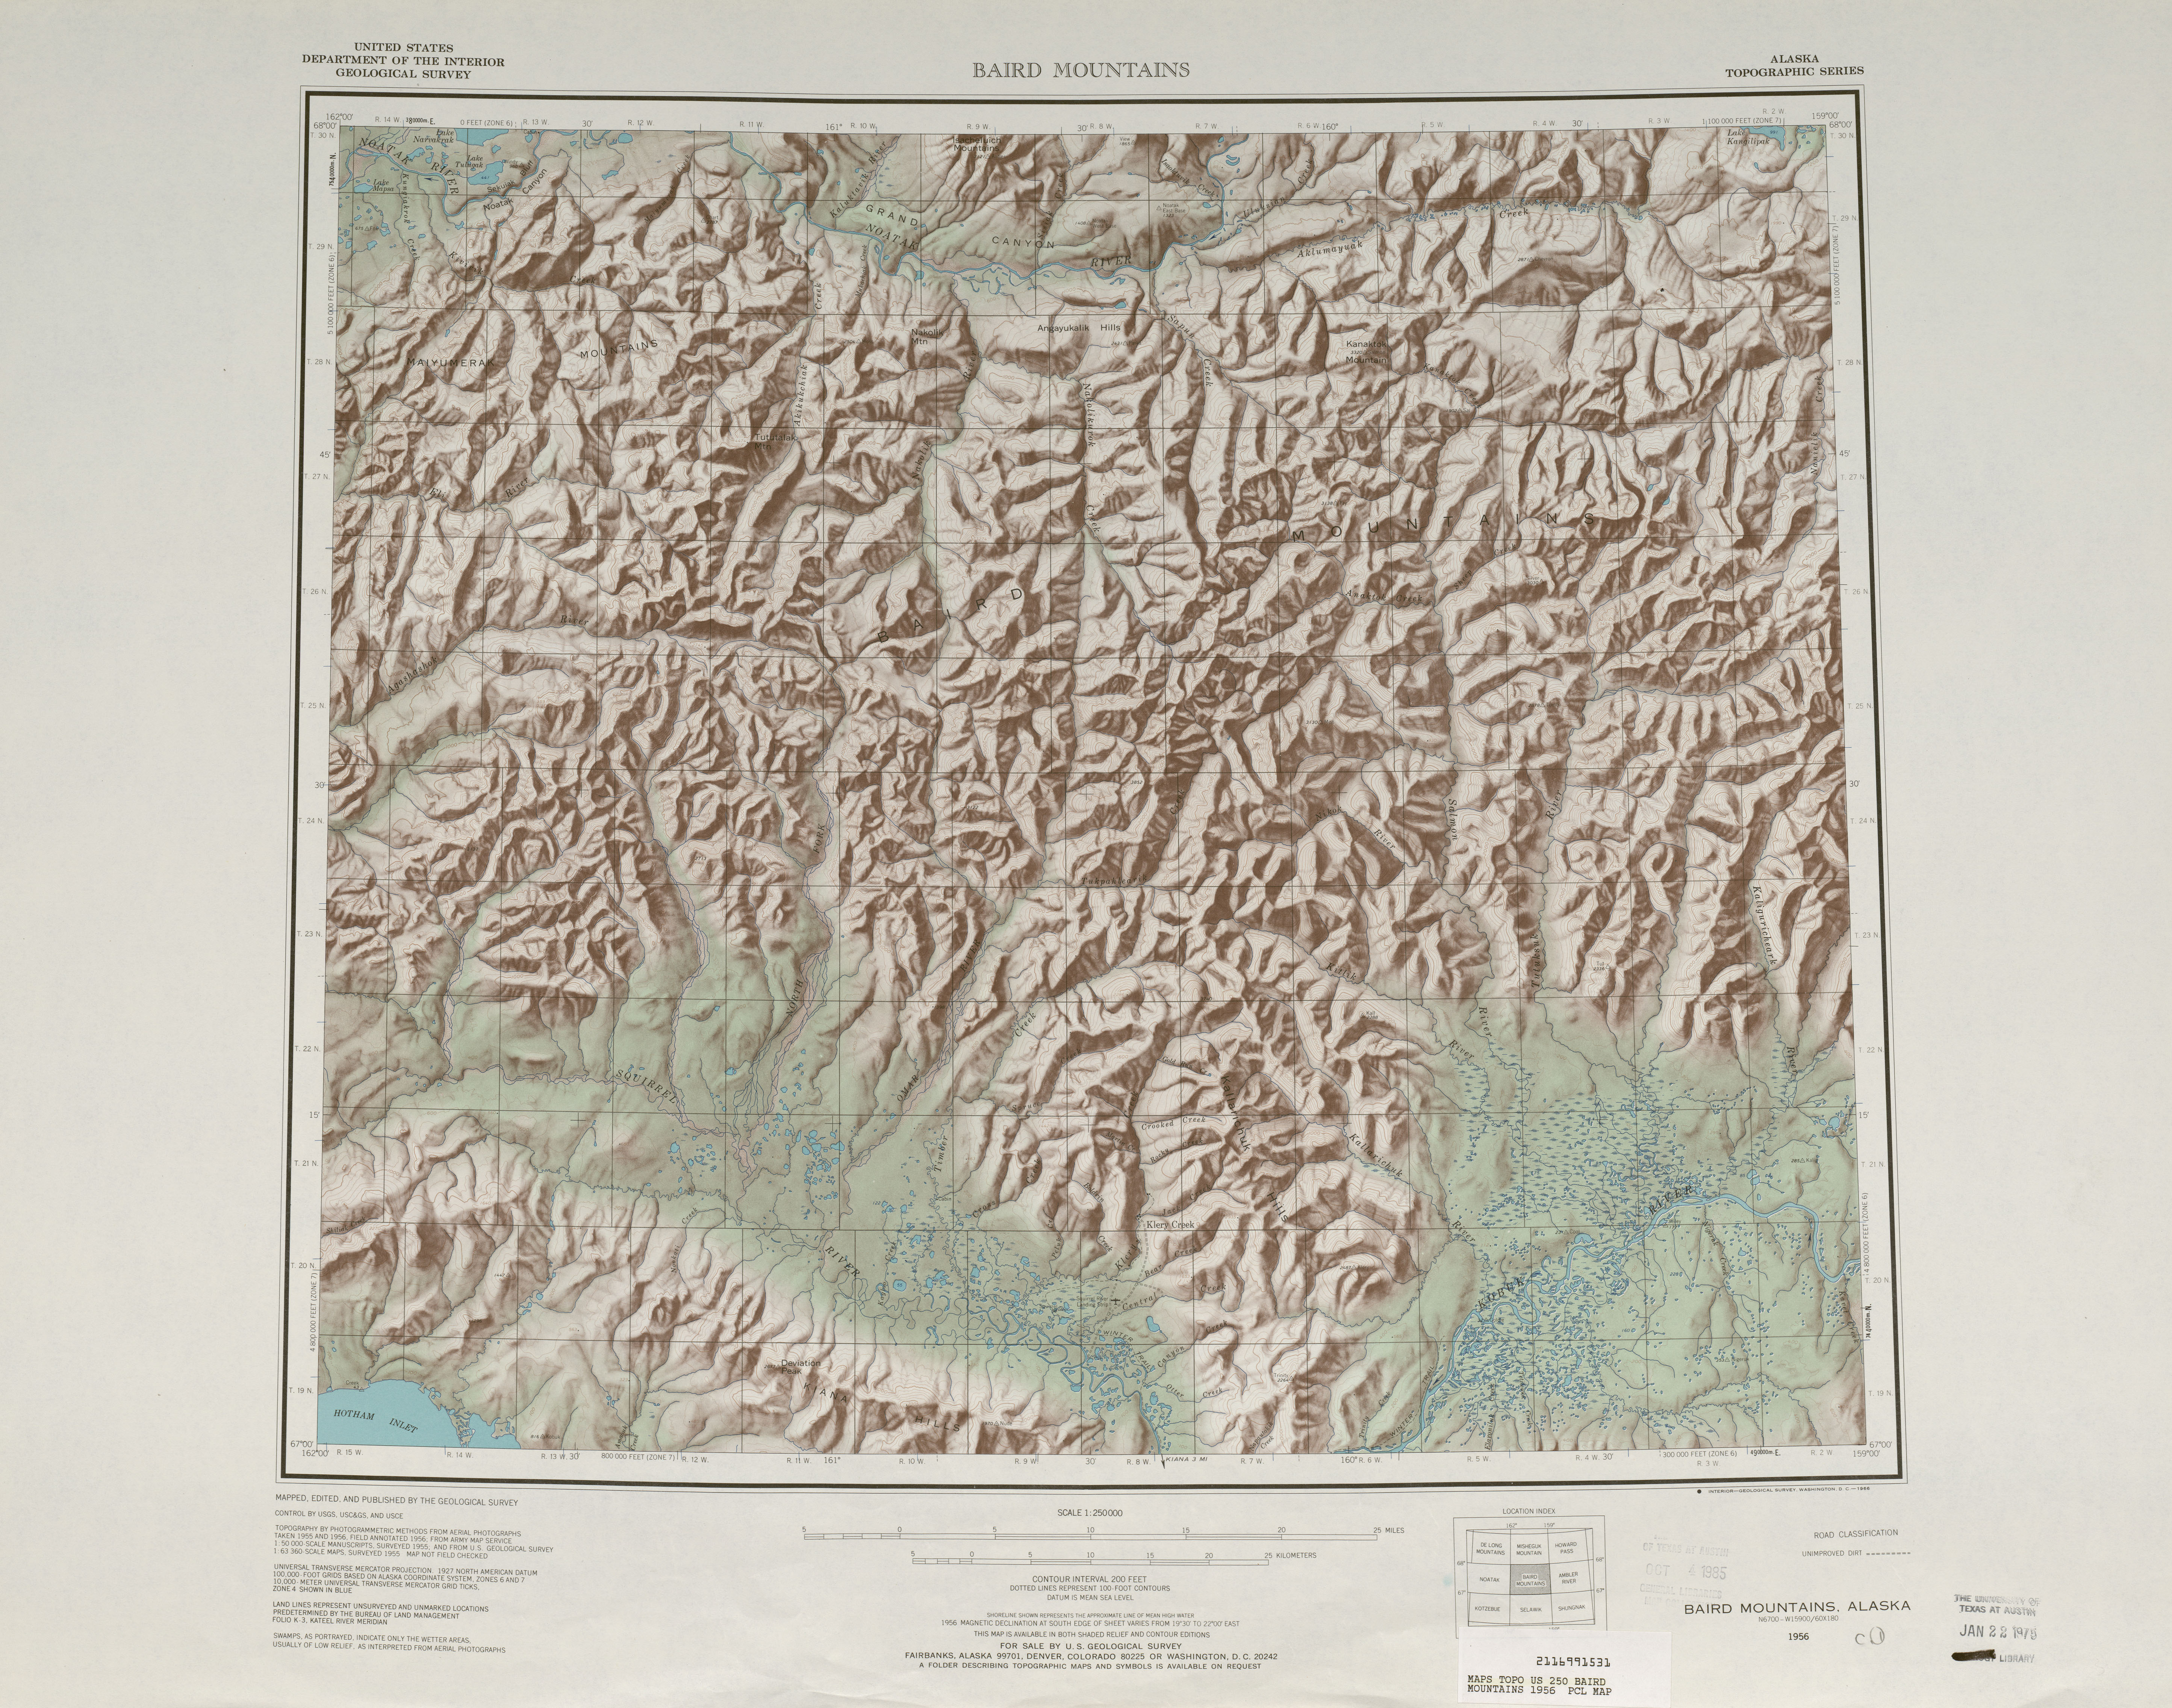 Baird Mountains 1956 Shaded Relief Map 4 5 Mb